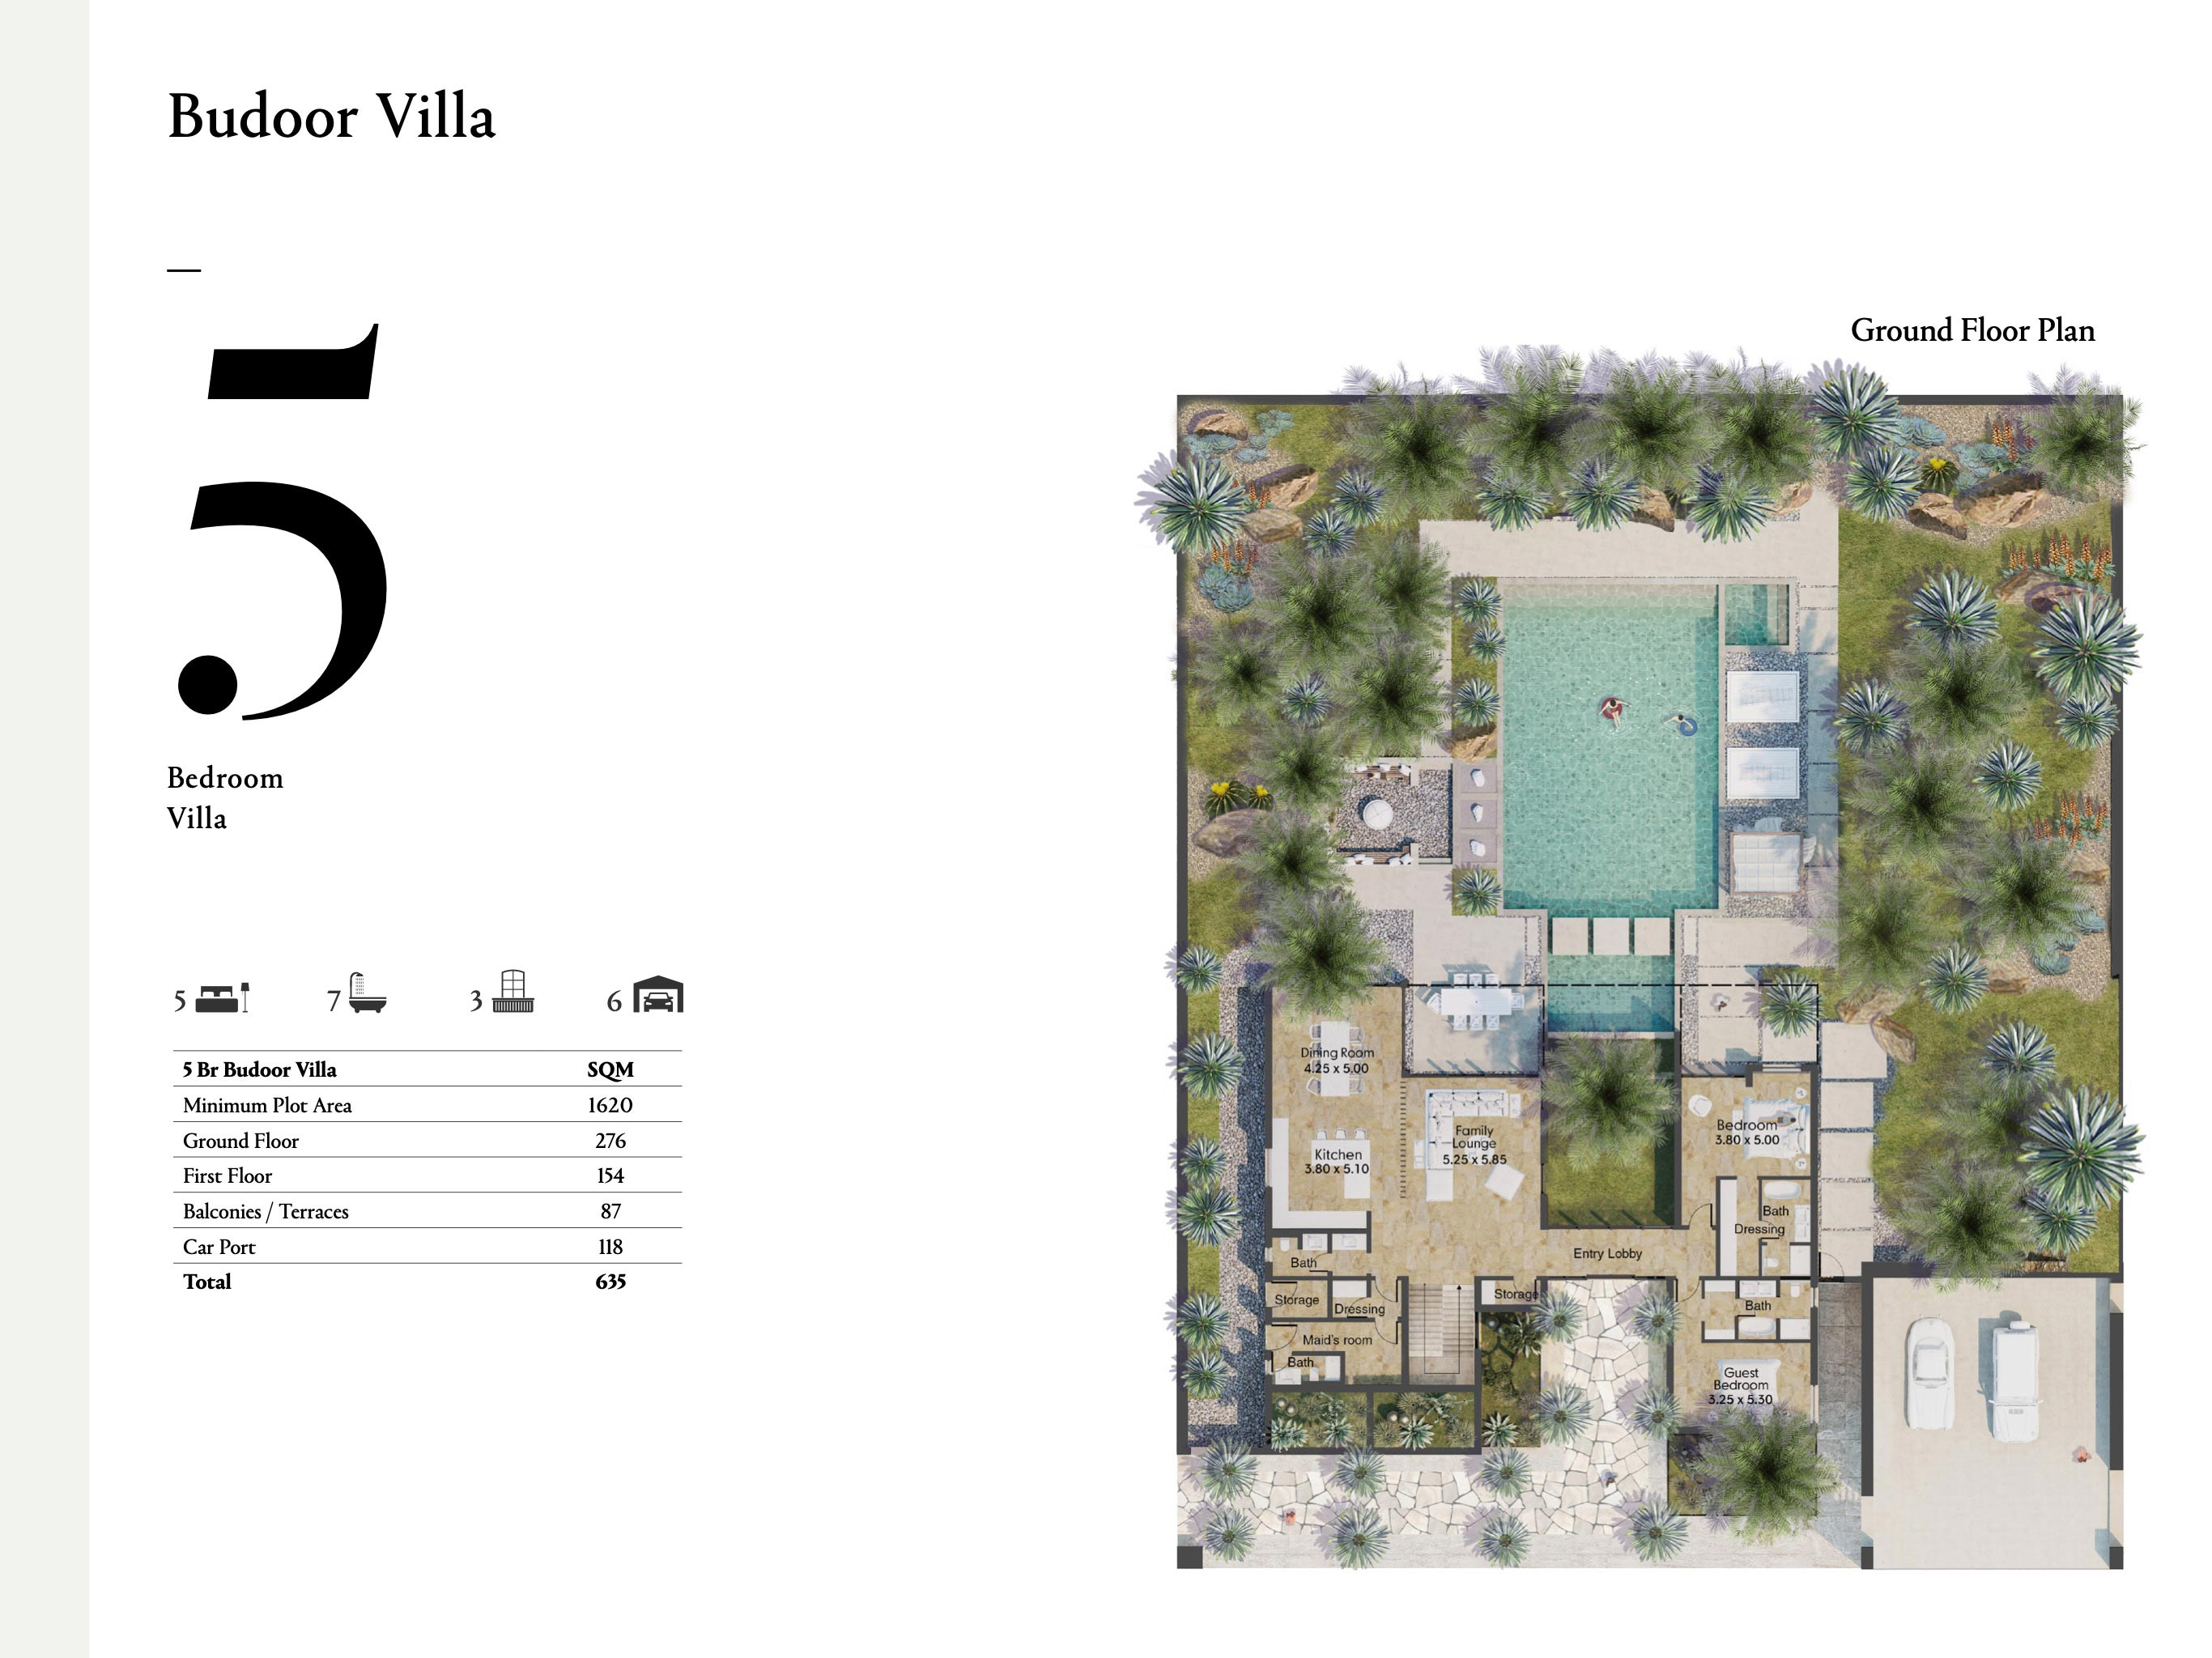 Budoor-Villa-5-Bedroom-Size-635-SQM